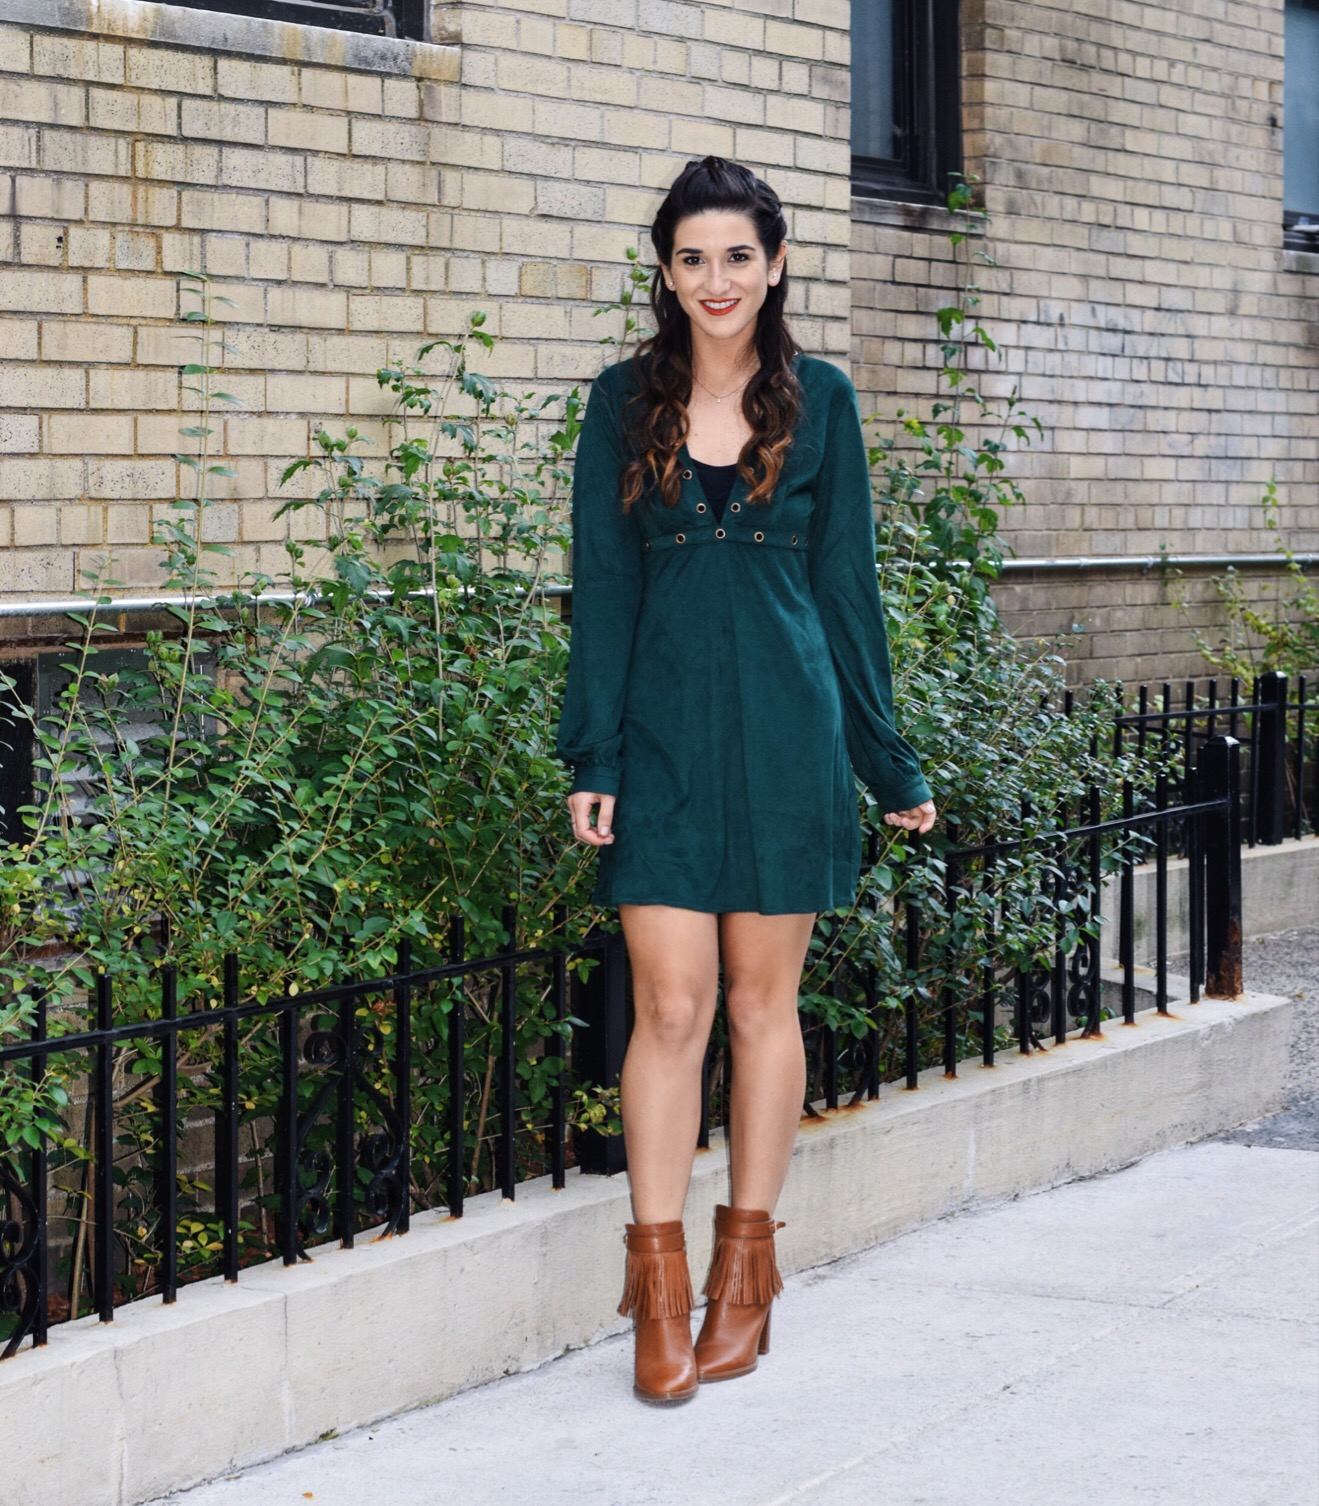 Suede Eyelet Dress Trescool Louboutins & Love Fashion Blog Esther Santer Street Style NYC Blogger Fall Winter Black Tights Ivanka Trump Fringe Booties Camel Hair Girl Women Beautiful Photoshoot Model Outfit OOTD Trendy Fur Vest Zara Inspo What To Wear.JPG